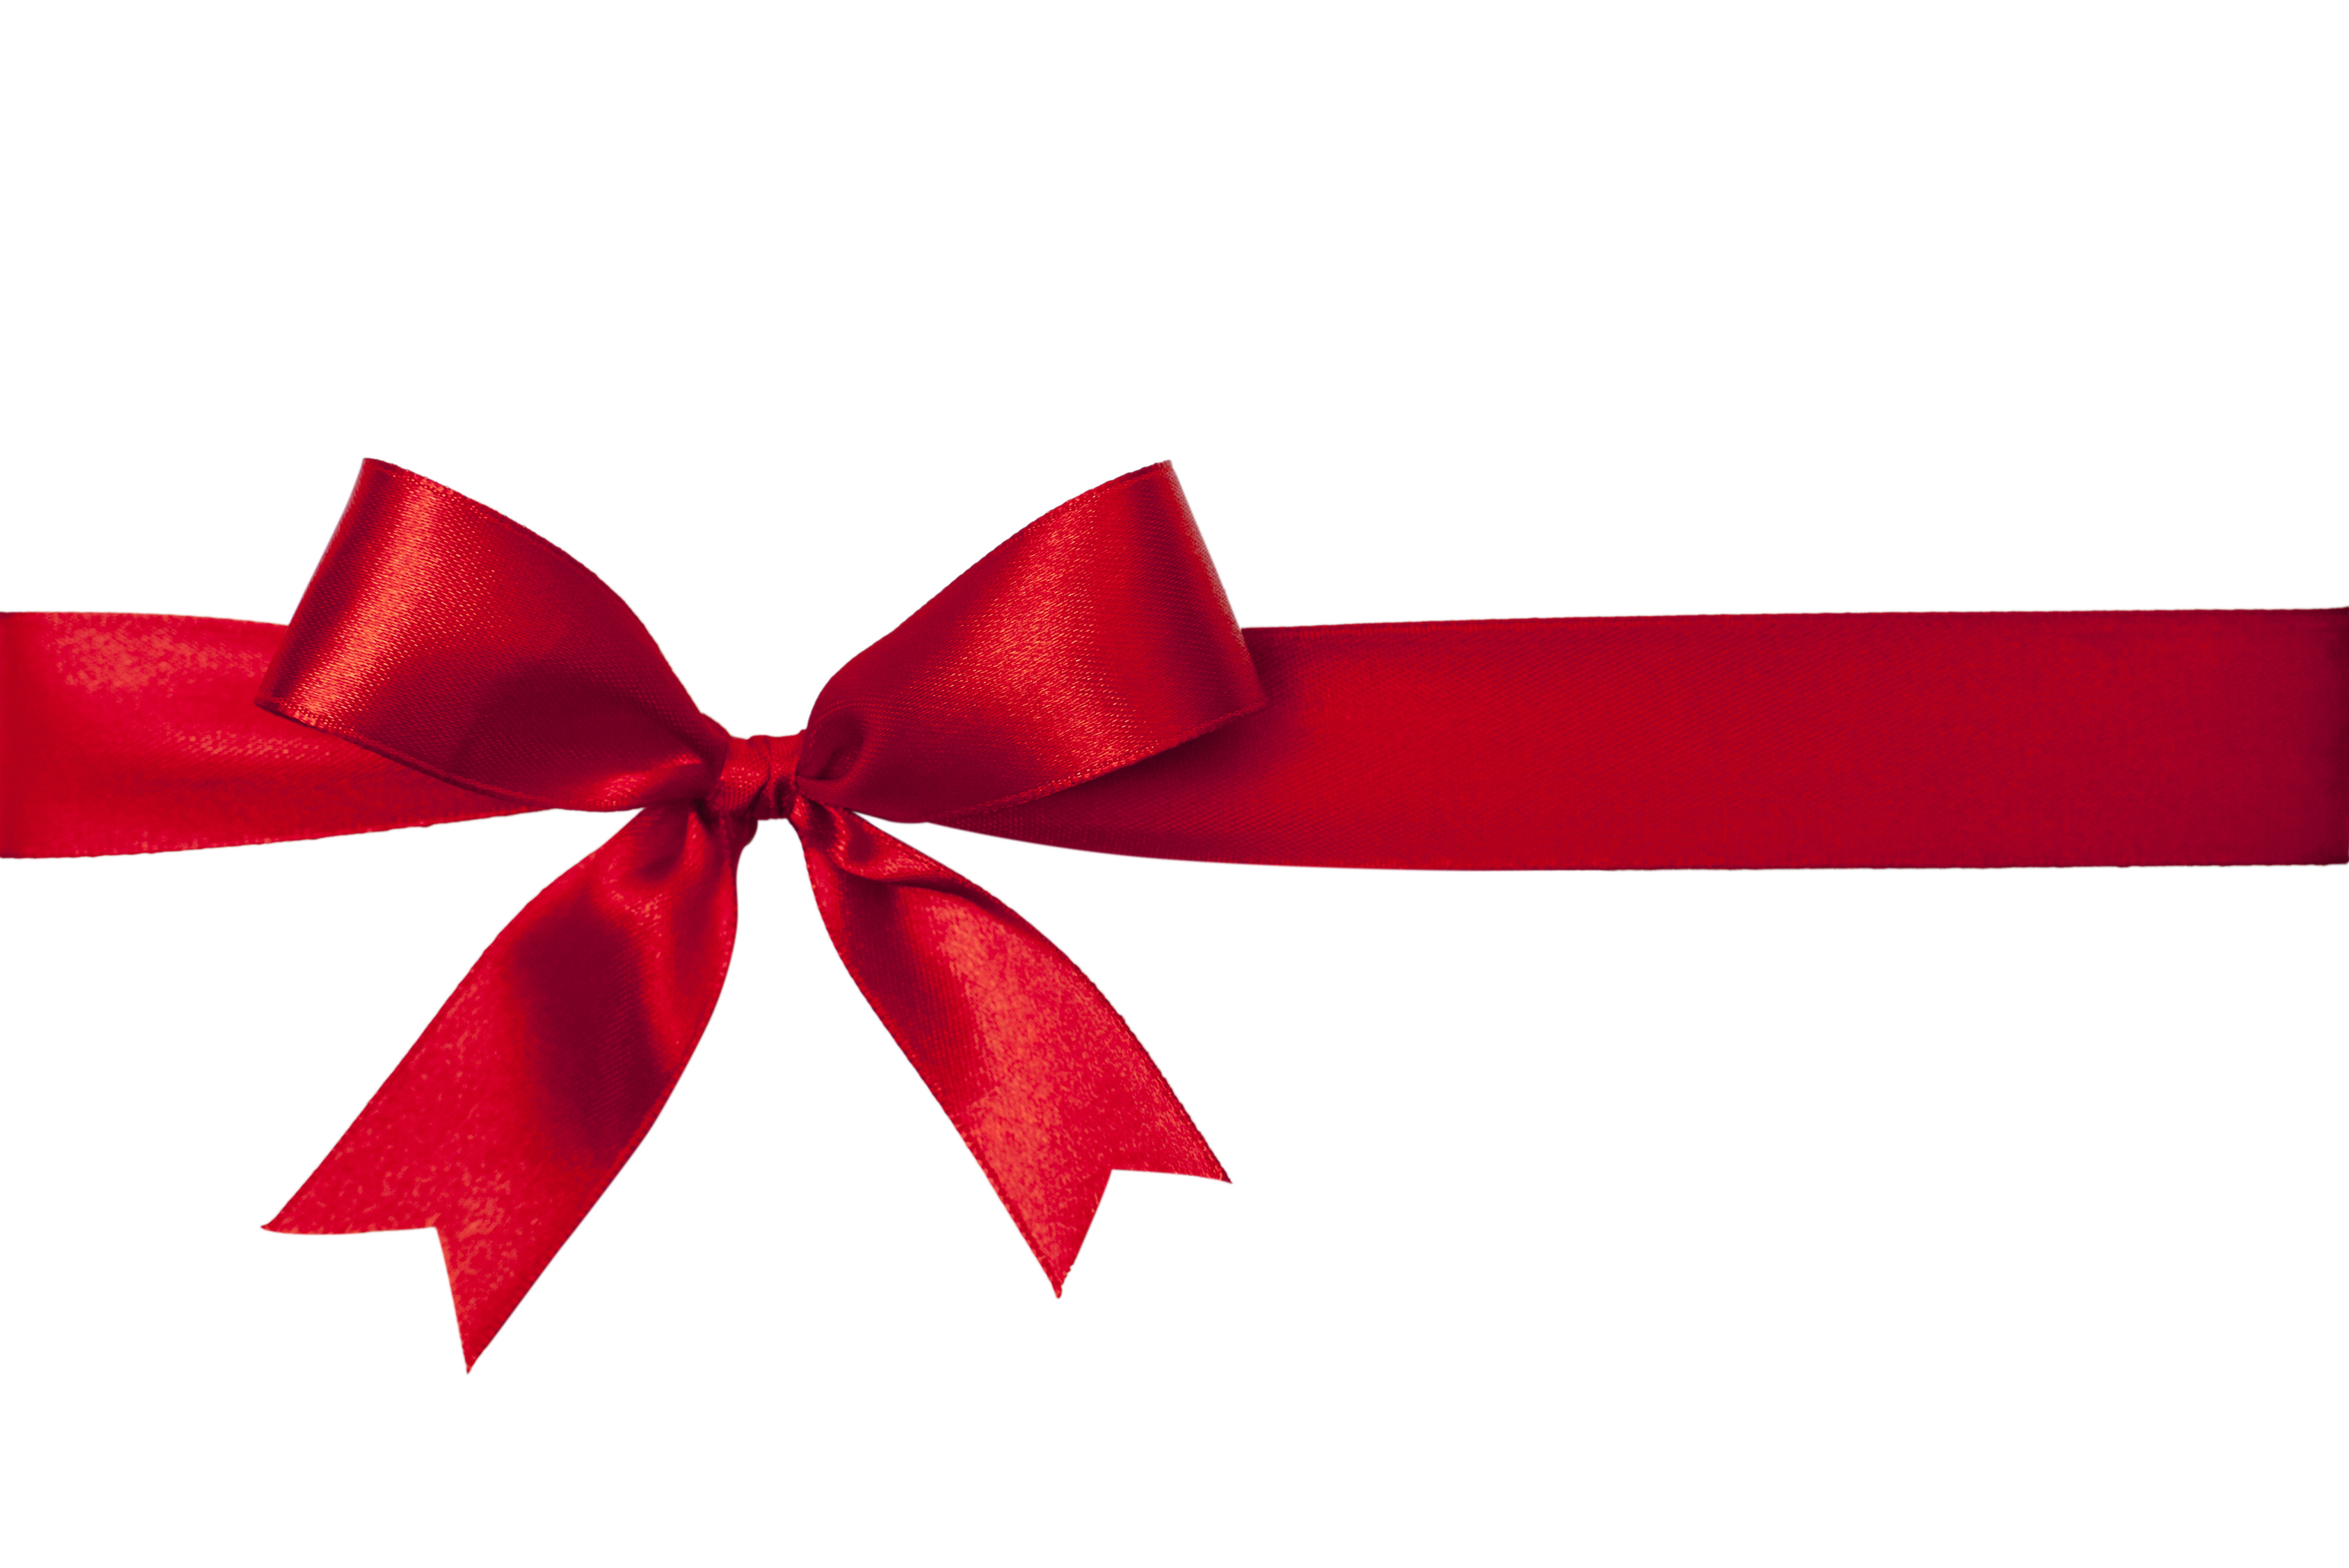 Ribbon High Quality Background on Wallpapers Vista